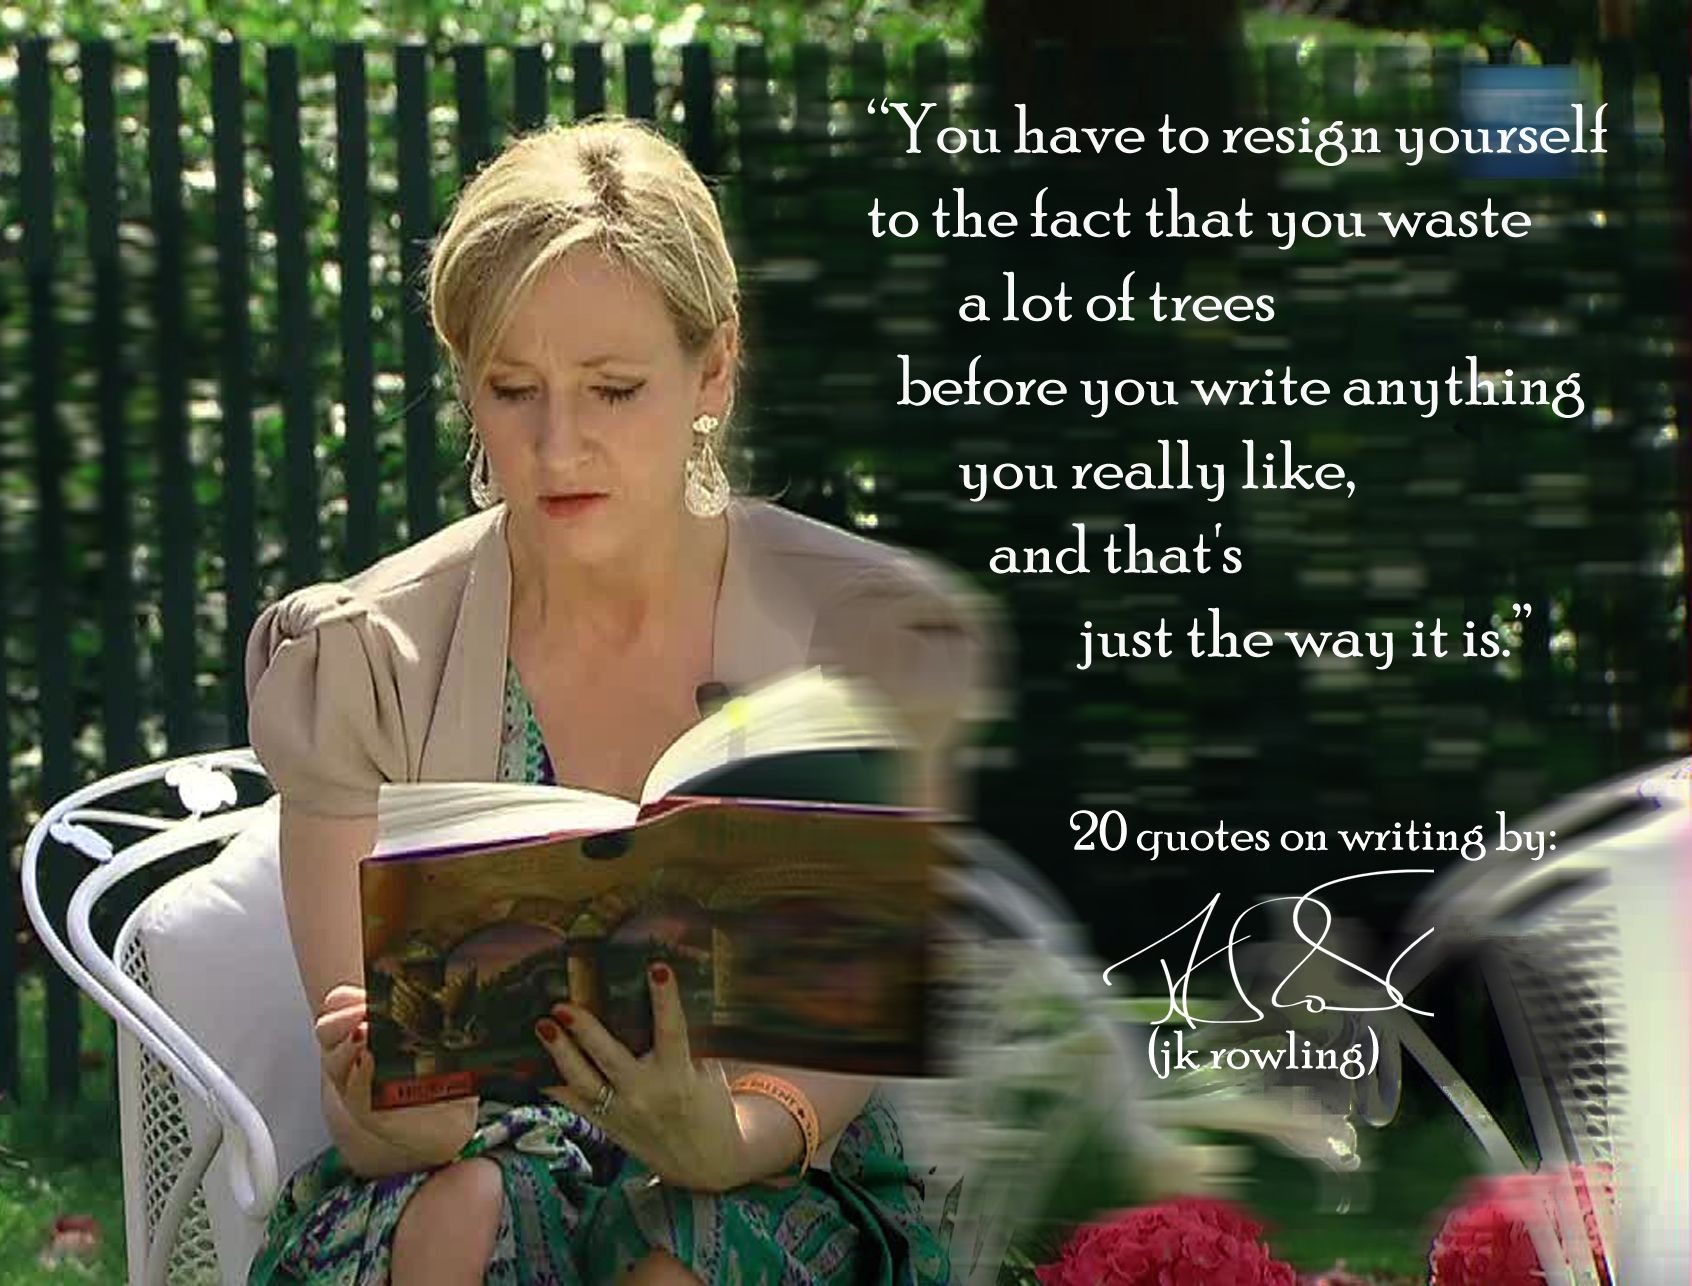 inspirational. j.k. rowling's 20 quotes on writing #nanowrimo